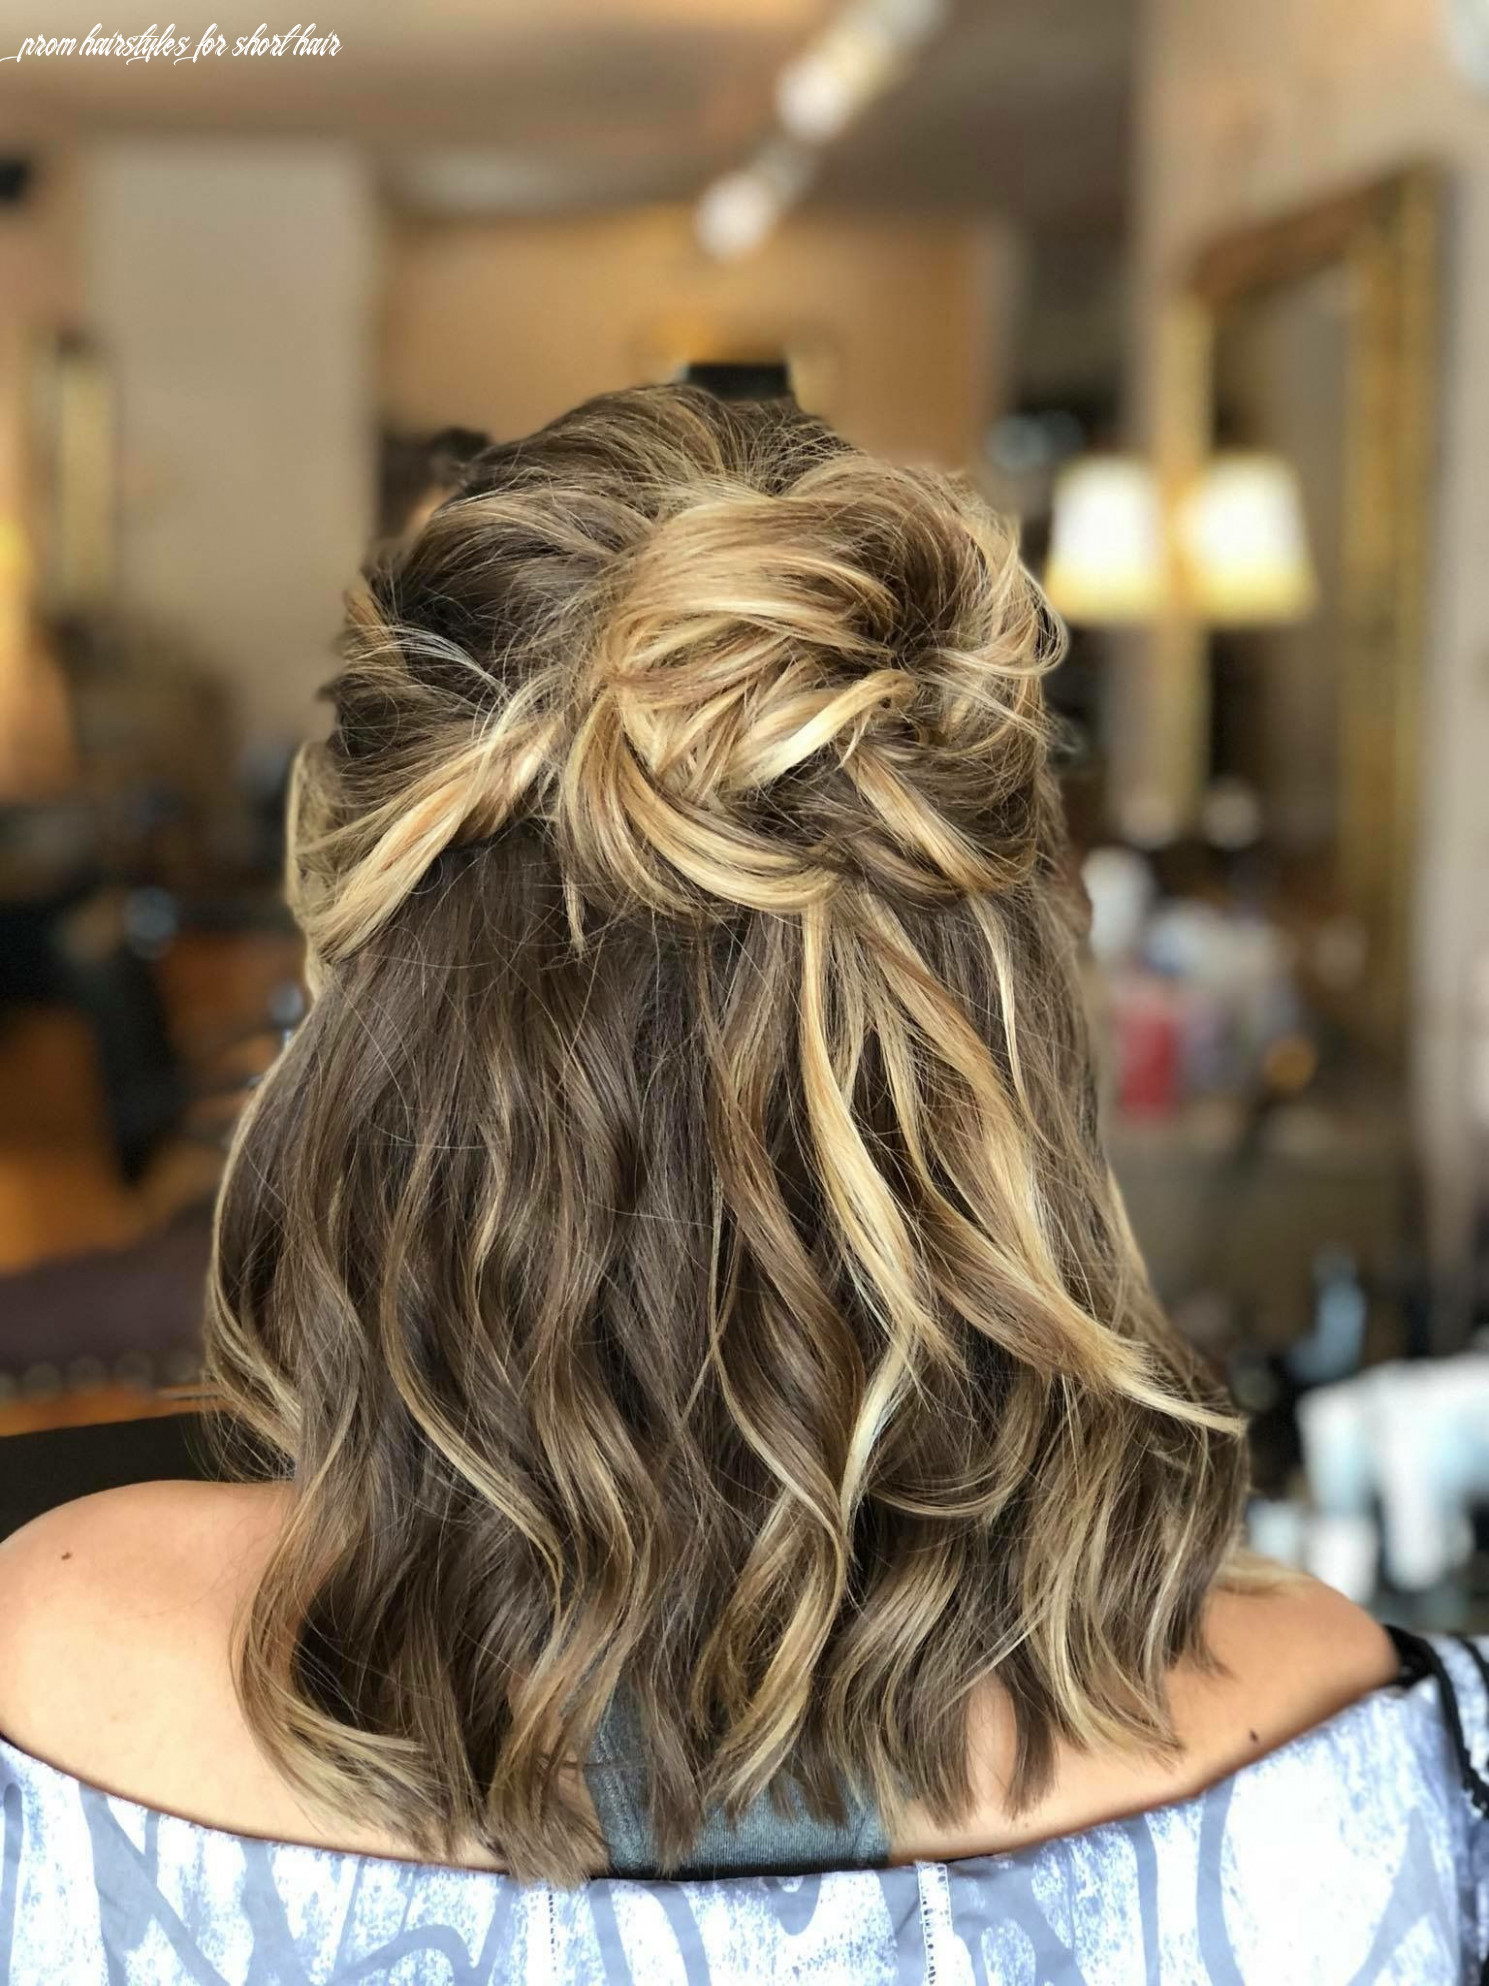 Pin by erin olafson on hair | prom hairstyles for short hair